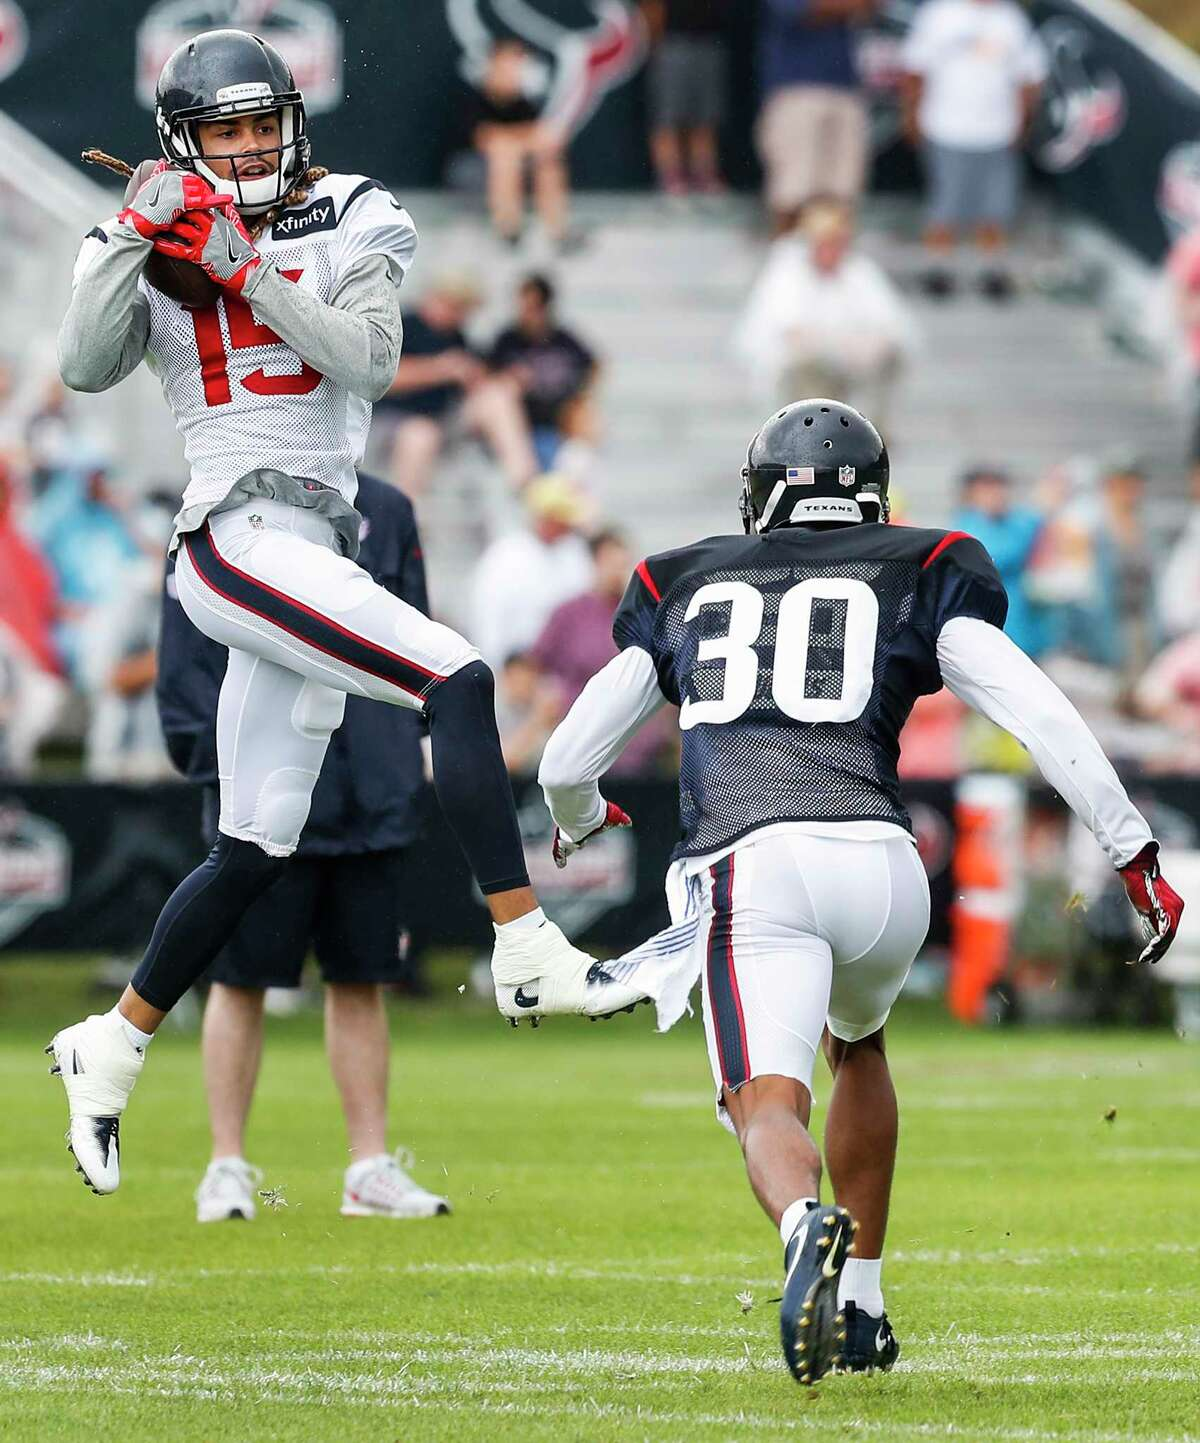 Texans cornerback Kevin Johnson, right, can do little but watch as wide receiver Will Fuller makes a catch in training camp. But by breaking his collarbone Wednesday, Fuller will be doing the watching for the next two to three months.